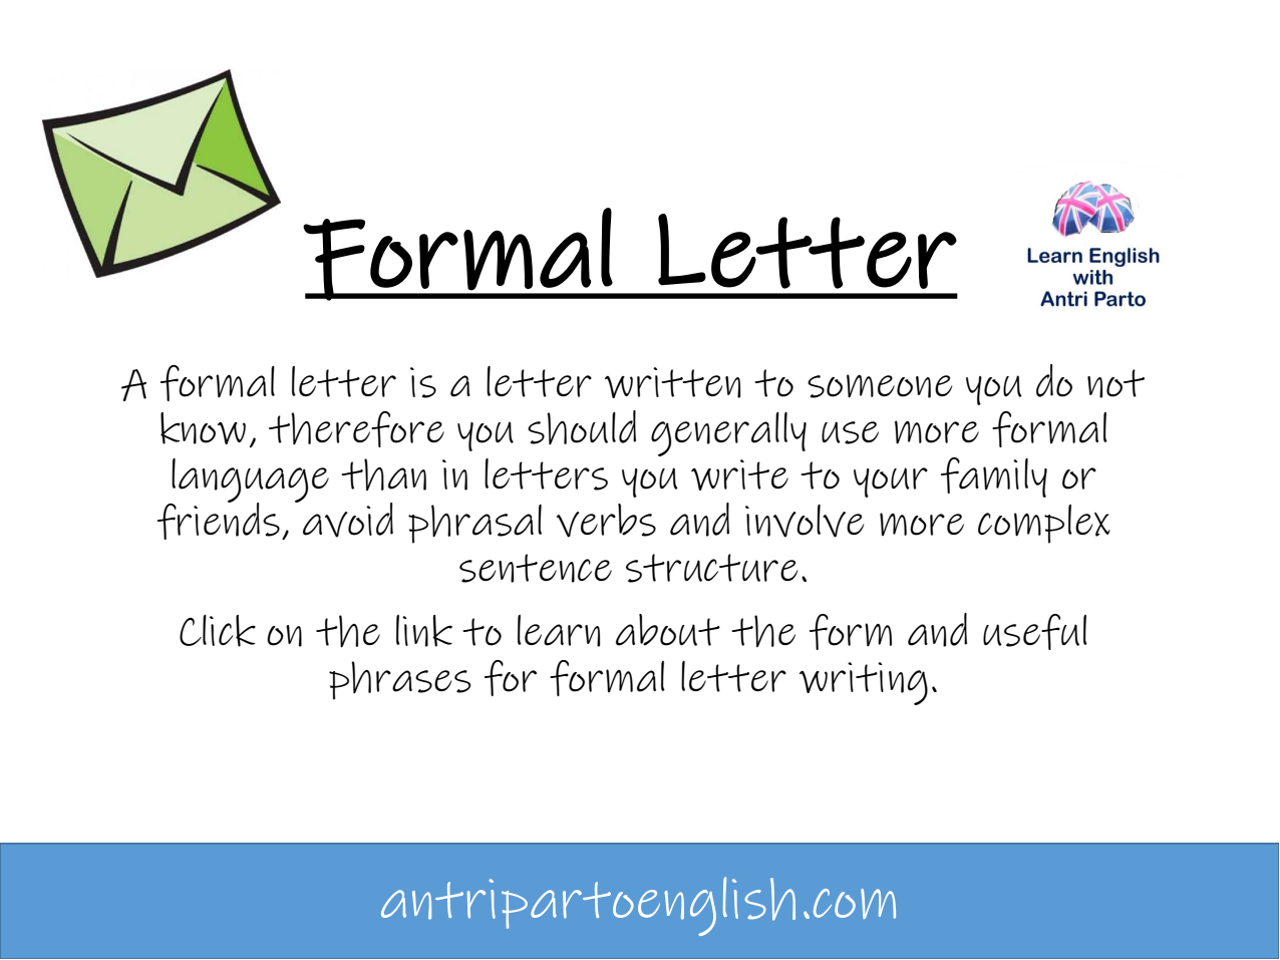 Formal letter learn english with antri parto a formal letter is a letter written to someone you do not know therefore you should generally use more formal language than in letters you write to your altavistaventures Image collections